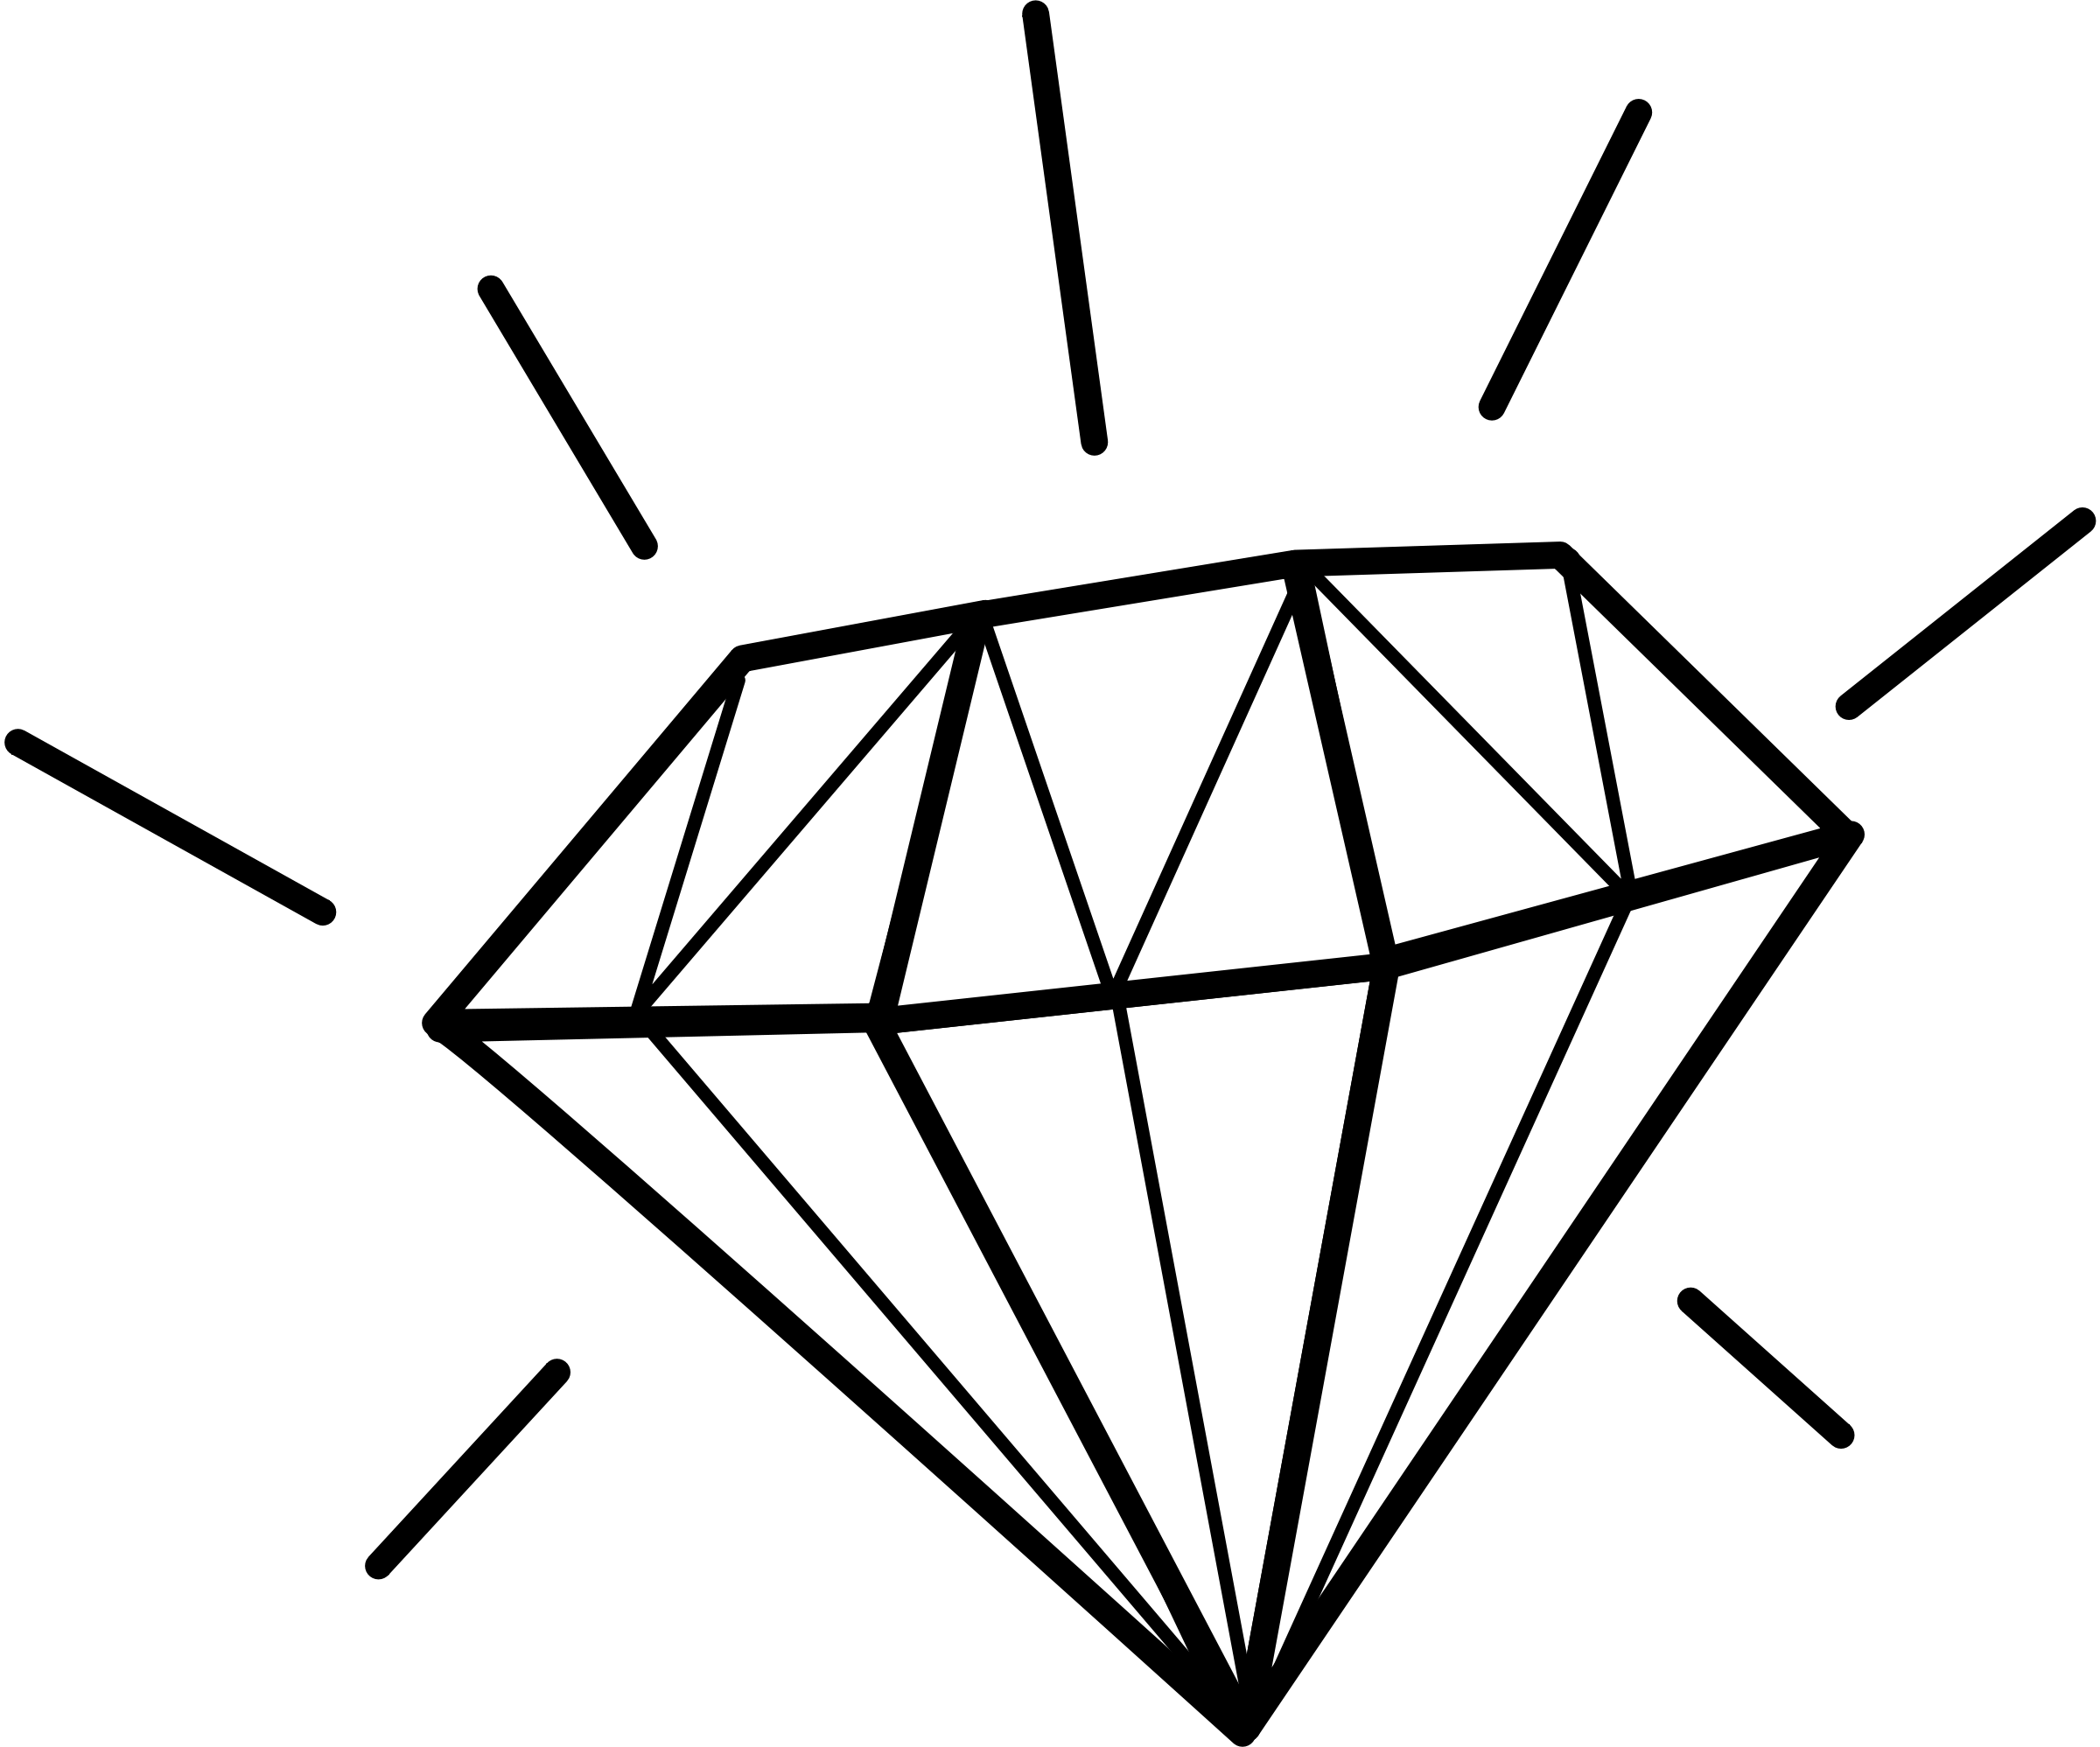 2400x1997 Best Diamond Clip Art